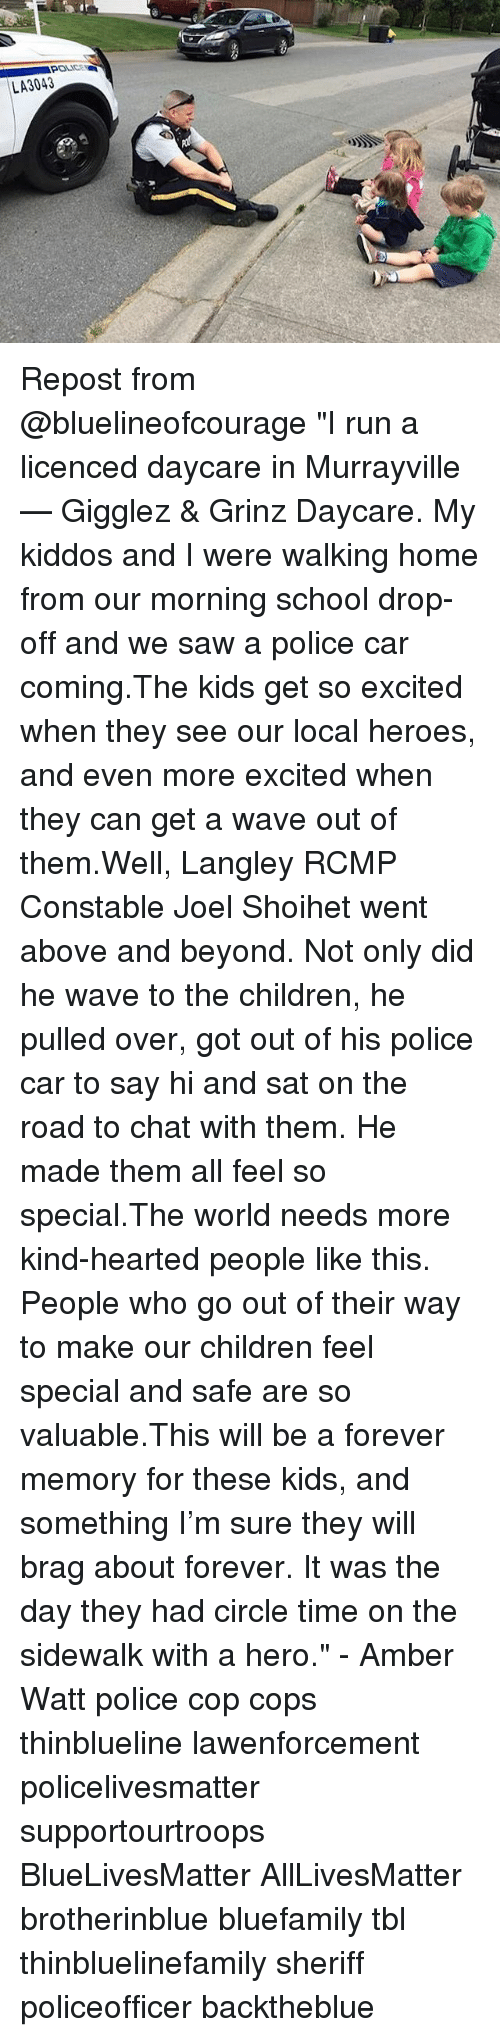 """above and beyond: LA3043 Repost from @bluelineofcourage """"I run a licenced daycare in Murrayville — Gigglez & Grinz Daycare. My kiddos and I were walking home from our morning school drop-off and we saw a police car coming.The kids get so excited when they see our local heroes, and even more excited when they can get a wave out of them.Well, Langley RCMP Constable Joel Shoihet went above and beyond. Not only did he wave to the children, he pulled over, got out of his police car to say hi and sat on the road to chat with them. He made them all feel so special.The world needs more kind-hearted people like this. People who go out of their way to make our children feel special and safe are so valuable.This will be a forever memory for these kids, and something I'm sure they will brag about forever. It was the day they had circle time on the sidewalk with a hero."""" - Amber Watt police cop cops thinblueline lawenforcement policelivesmatter supportourtroops BlueLivesMatter AllLivesMatter brotherinblue bluefamily tbl thinbluelinefamily sheriff policeofficer backtheblue"""